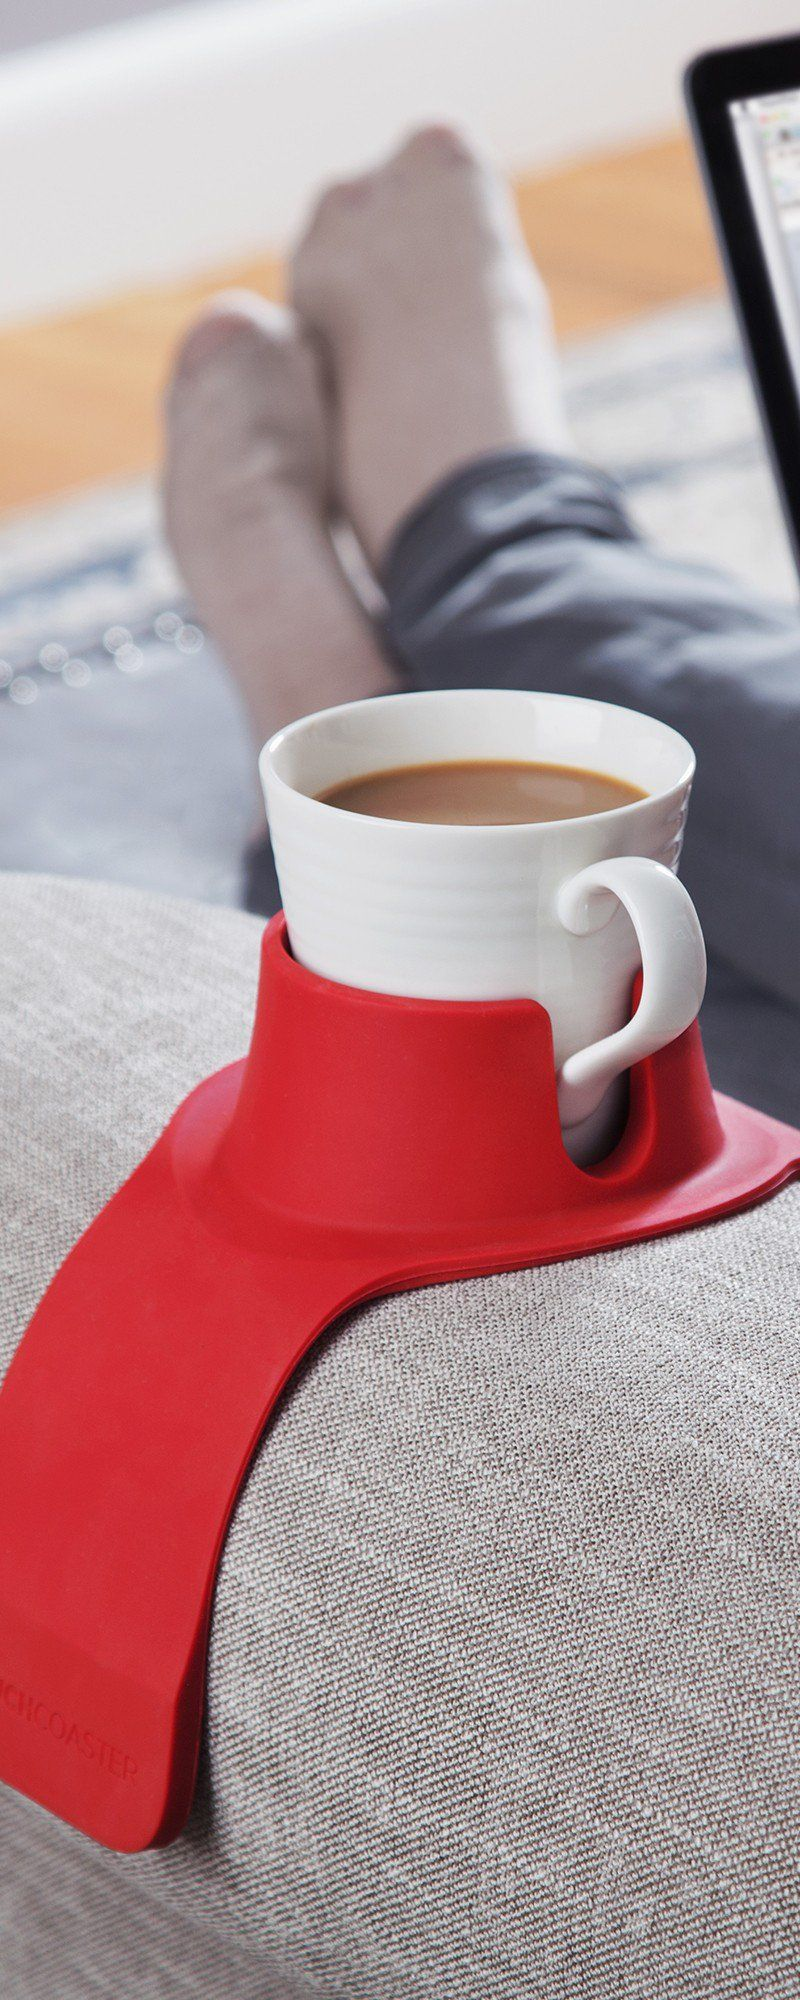 CouchCoaster's couch drink holder, discovered by The Grommet, keeps your drinks close by. Drape…